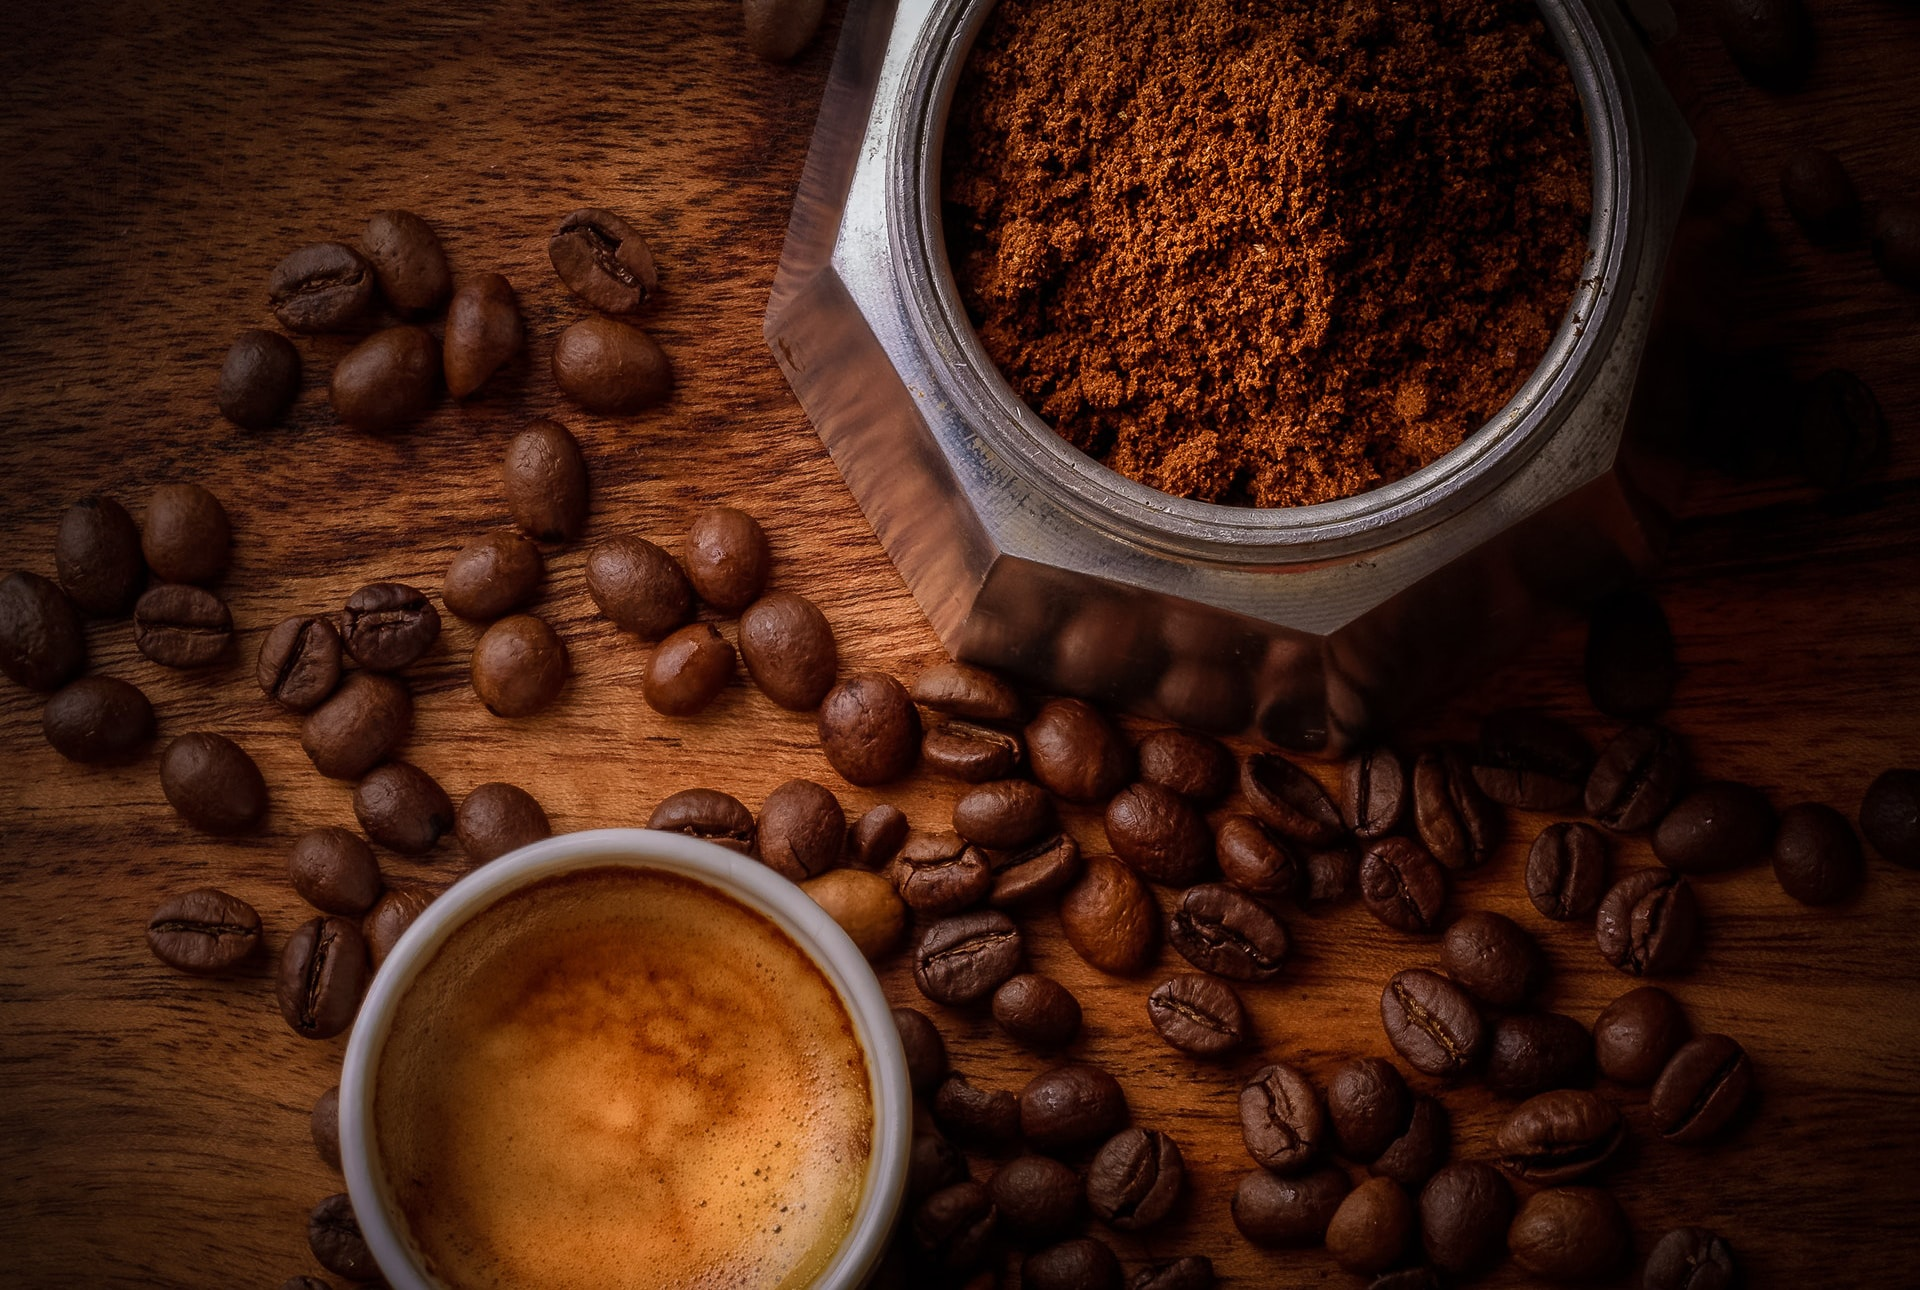 a cup of coffee, coffee beans, and coffee ground placed on a wooden table